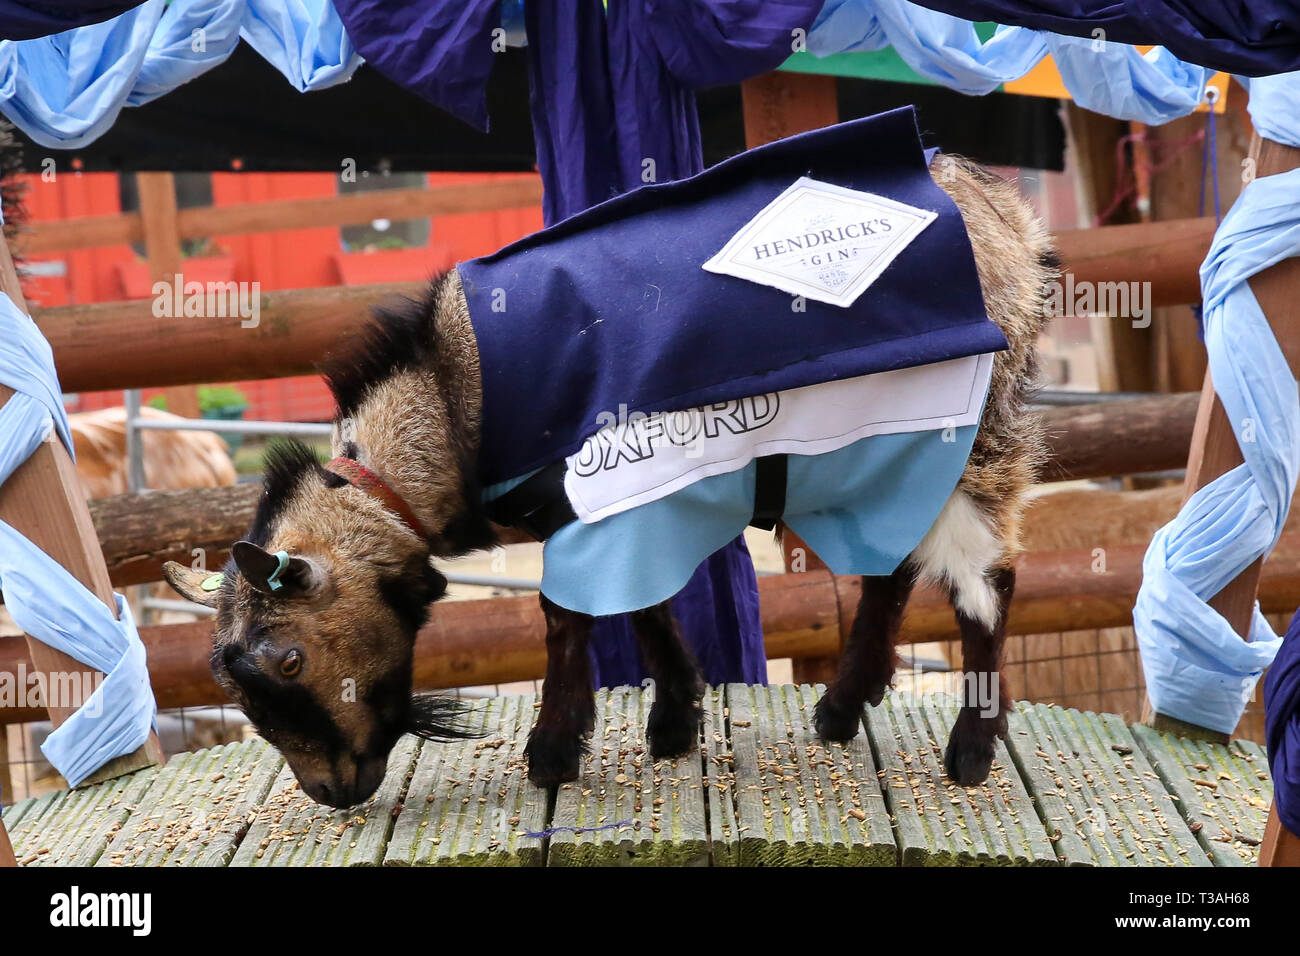 The winner Hamish representing Oxford is seen on the podium after the Oxford vs Cambridge Goat Race in East London. Two pygmy goats compete during the 10th Oxford and Cambridge Goat Race at Spitalfields City Farm, Bethnal Green in East London. The annual fundraising event, which takes place at the same time as the Oxford and Cambridge boat race, where two goats, one named Hamish representing Oxford and the other Hugo representing Cambridge to be crowned King Billy. - Stock Image